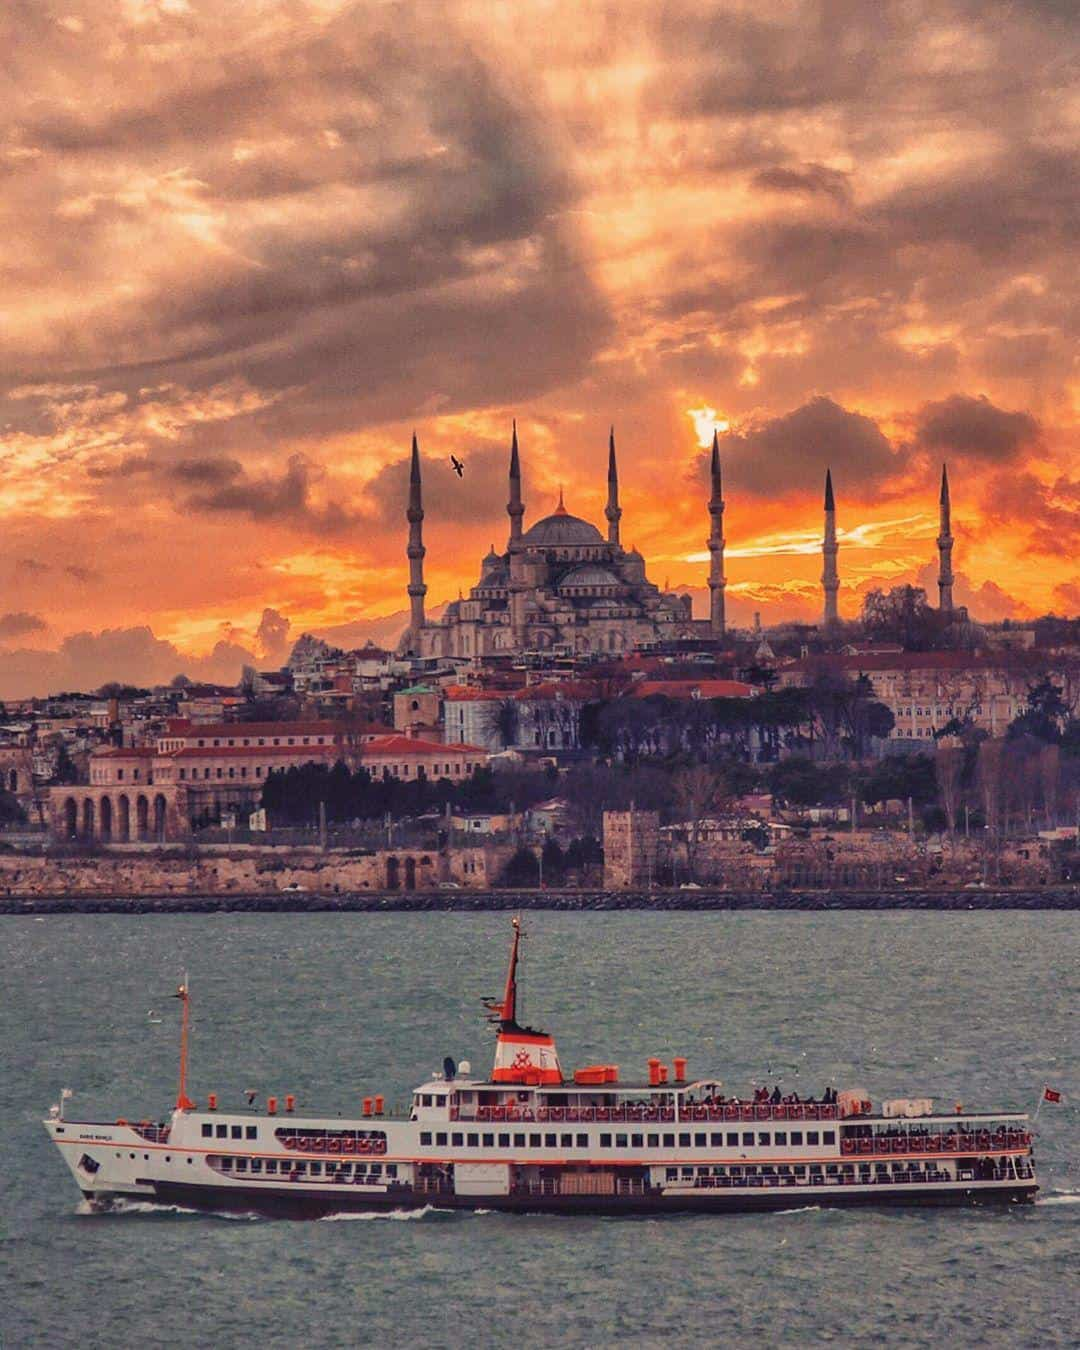 istanbul turkey travel tour skyline sunset topkapi palace